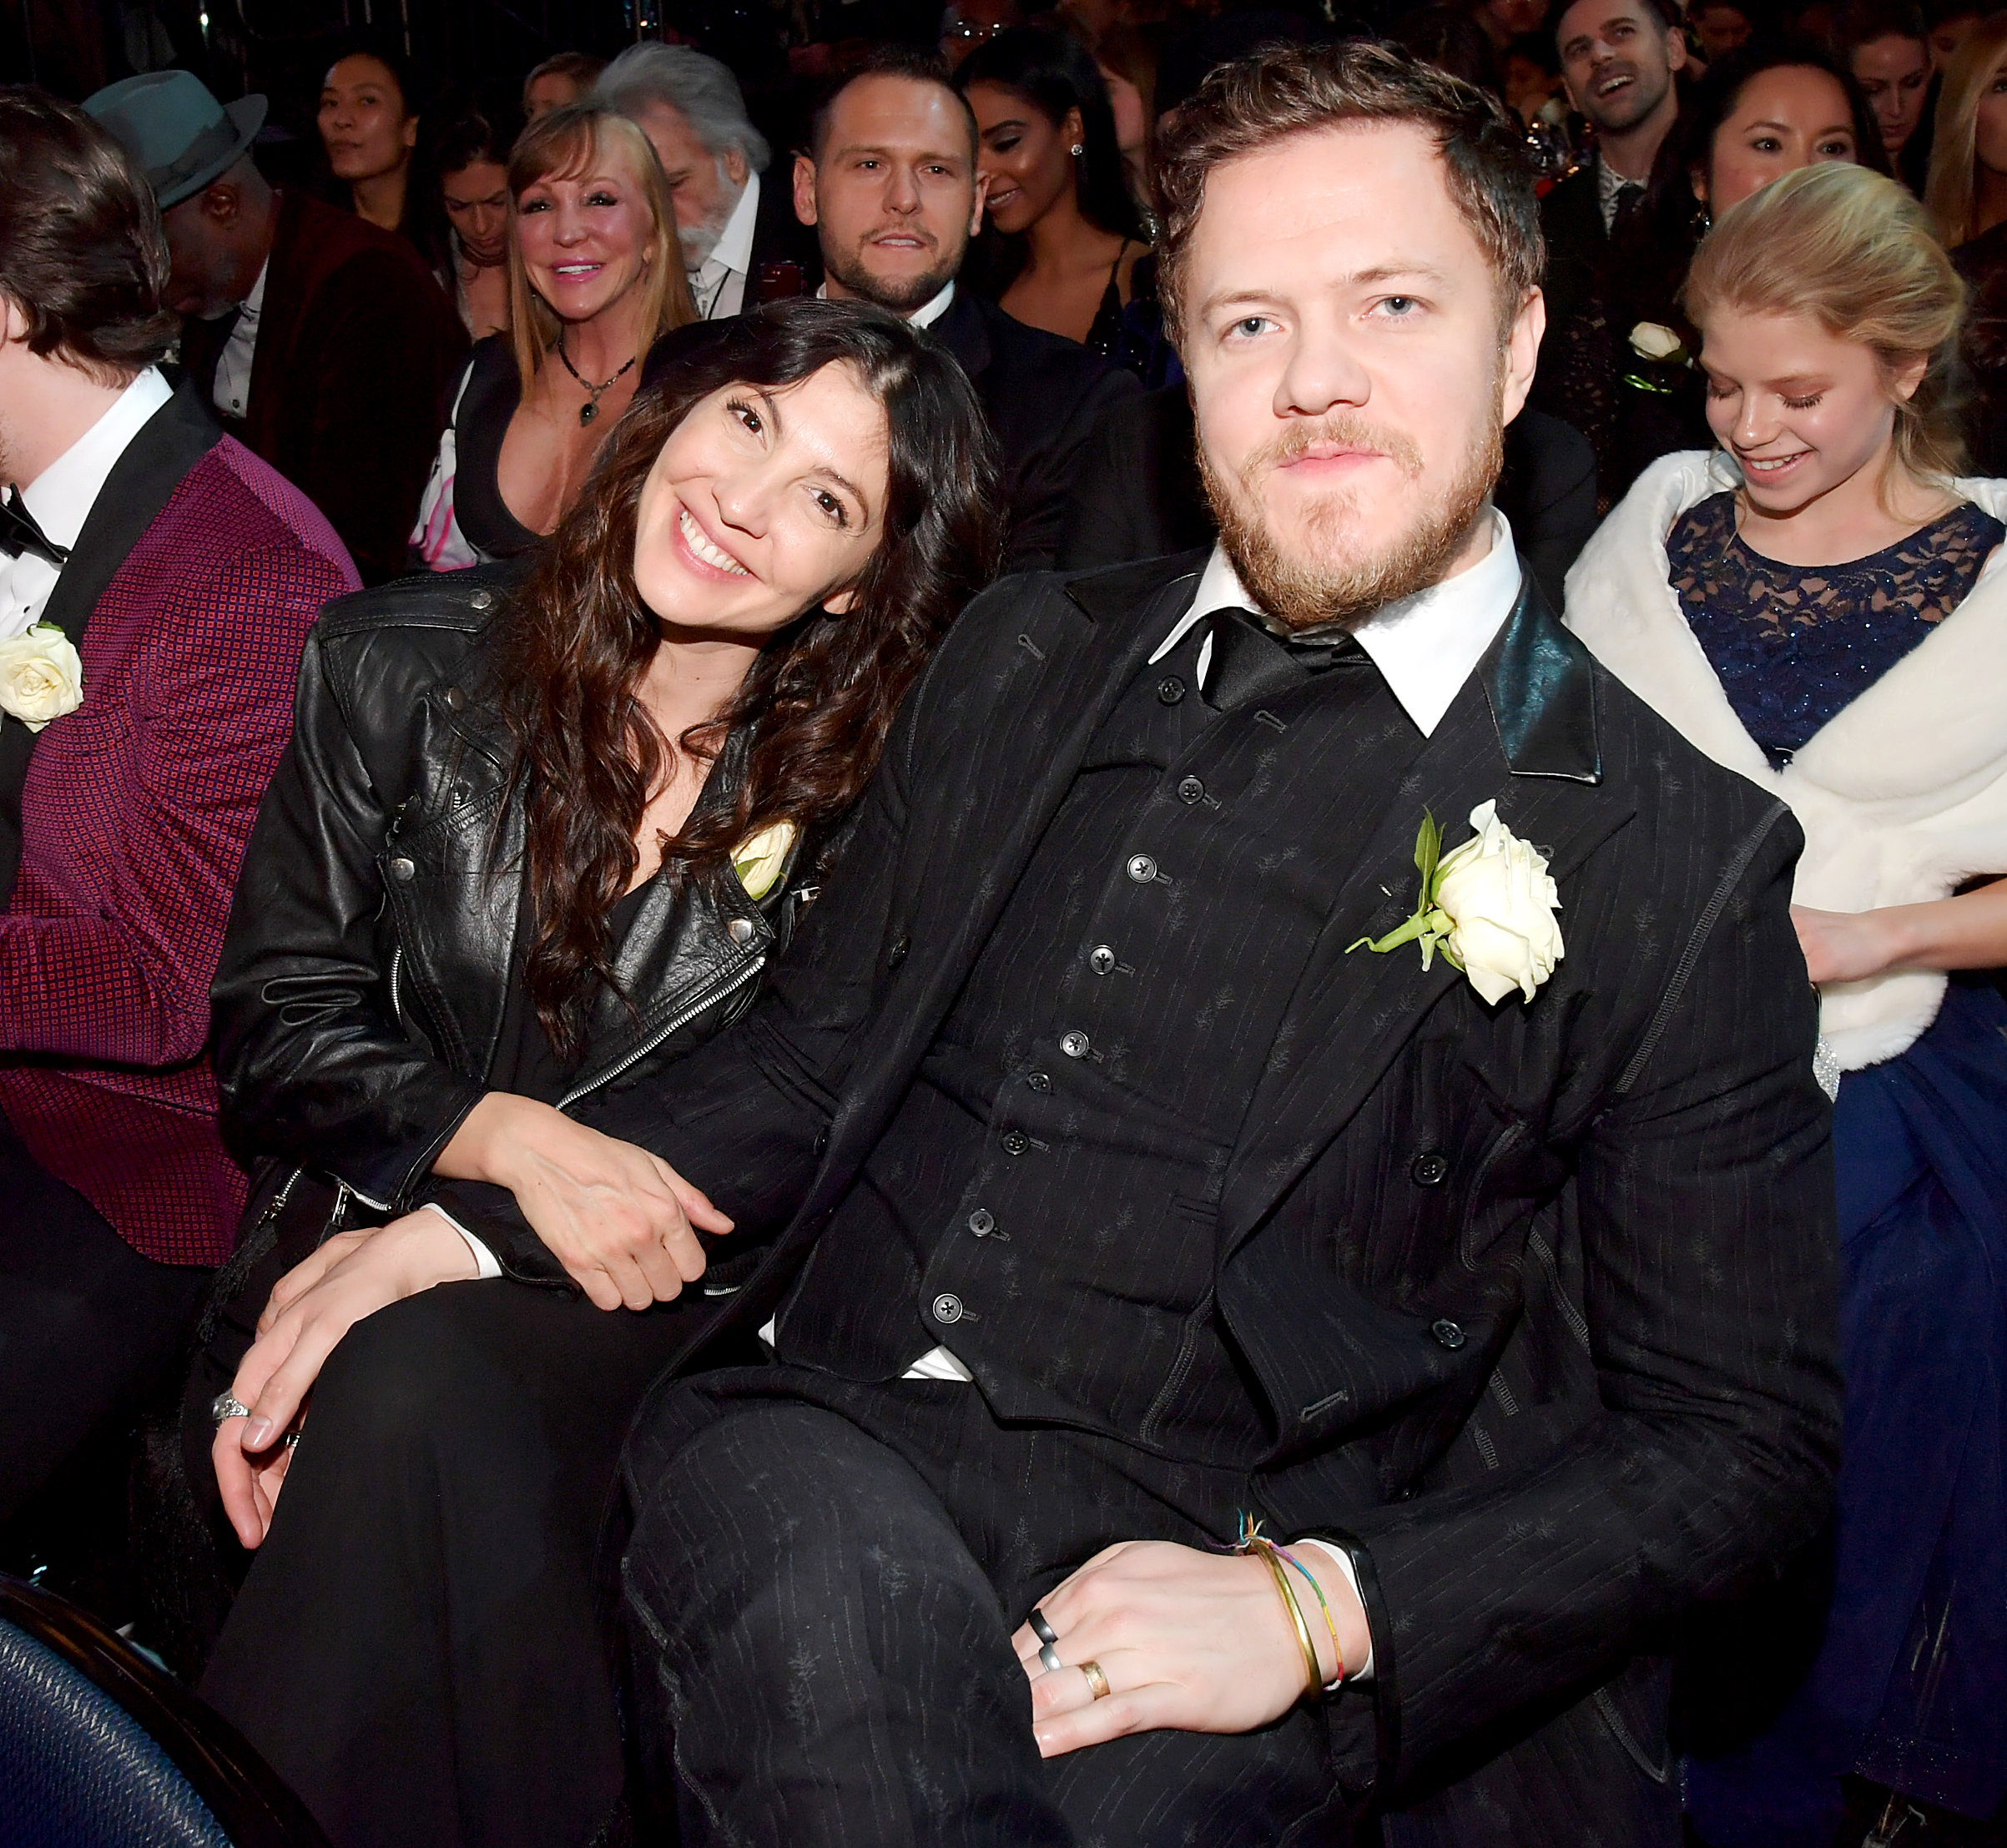 Dan Reynolds Split From Wife Made Them Stronger - Aja Volkman and Dan Reynolds attend the 60th Annual GRAMMY Awards at Madison Square Garden on January 28, 2018 in New York City.